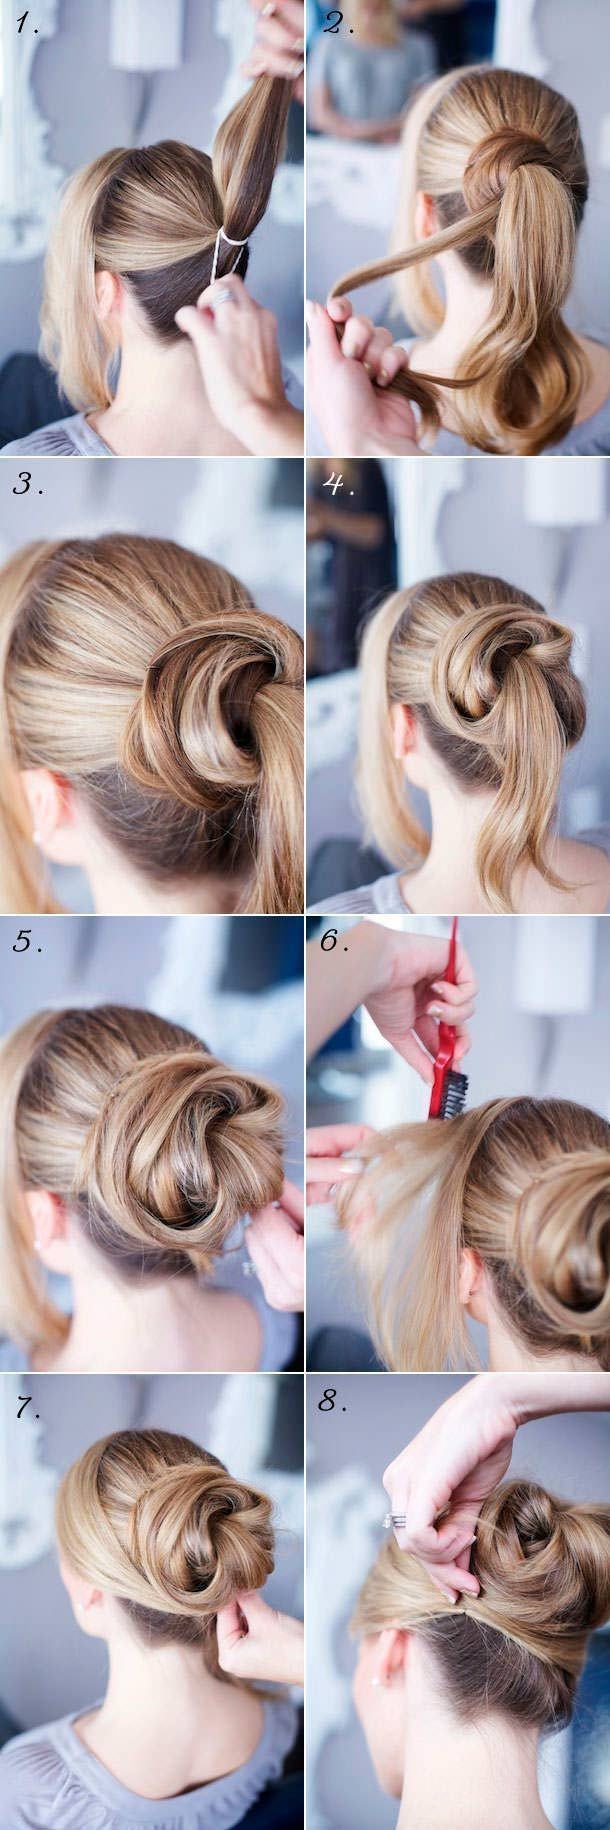 How to: Je haar opsteken 1